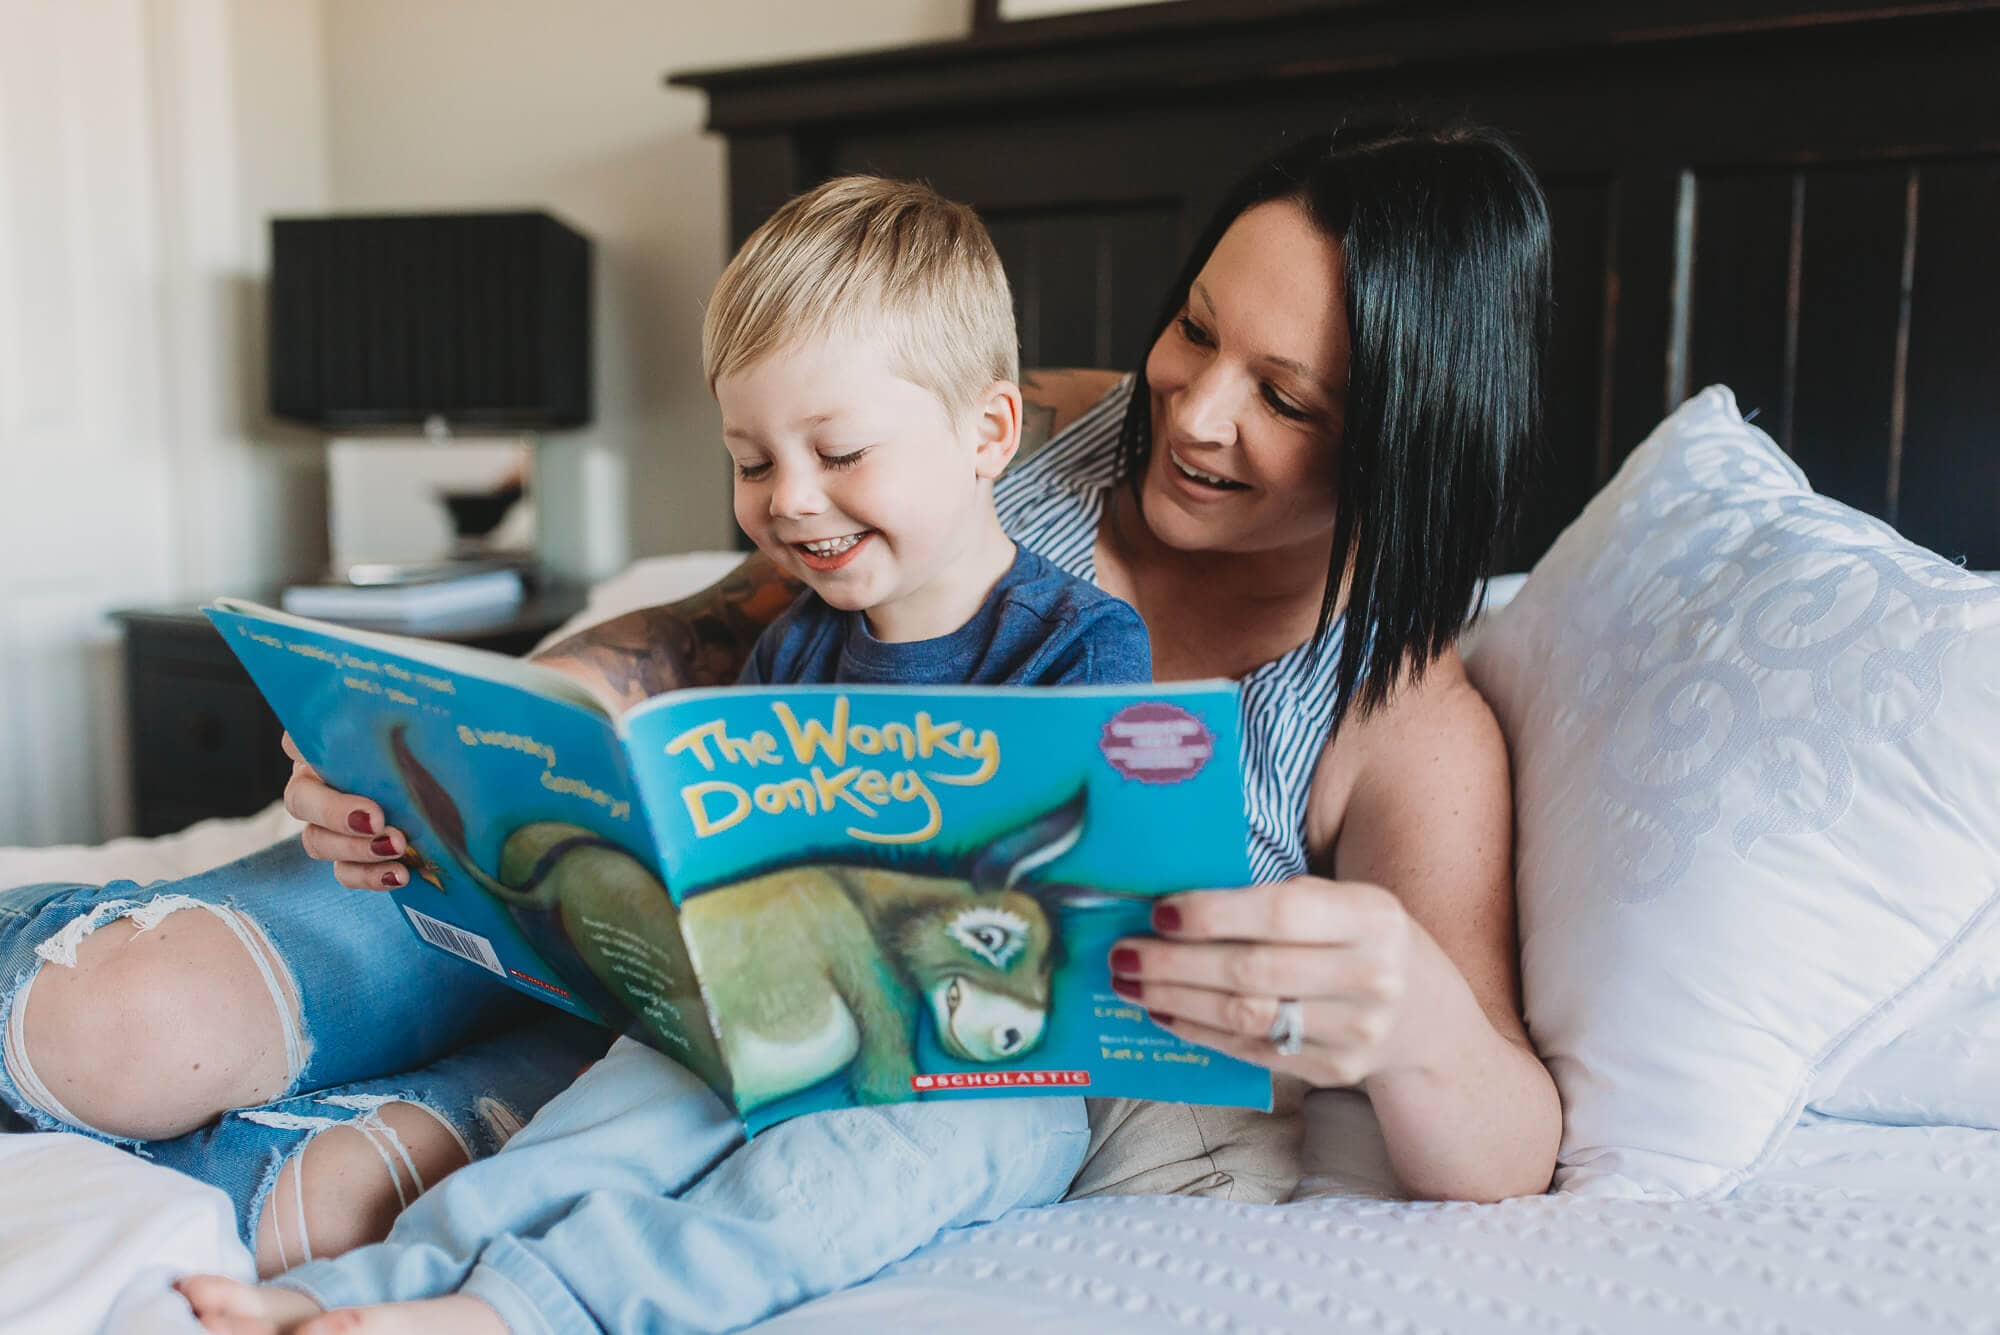 Vancouver Family Photographer shows mom and toddler reading book during Vancouver family photo session